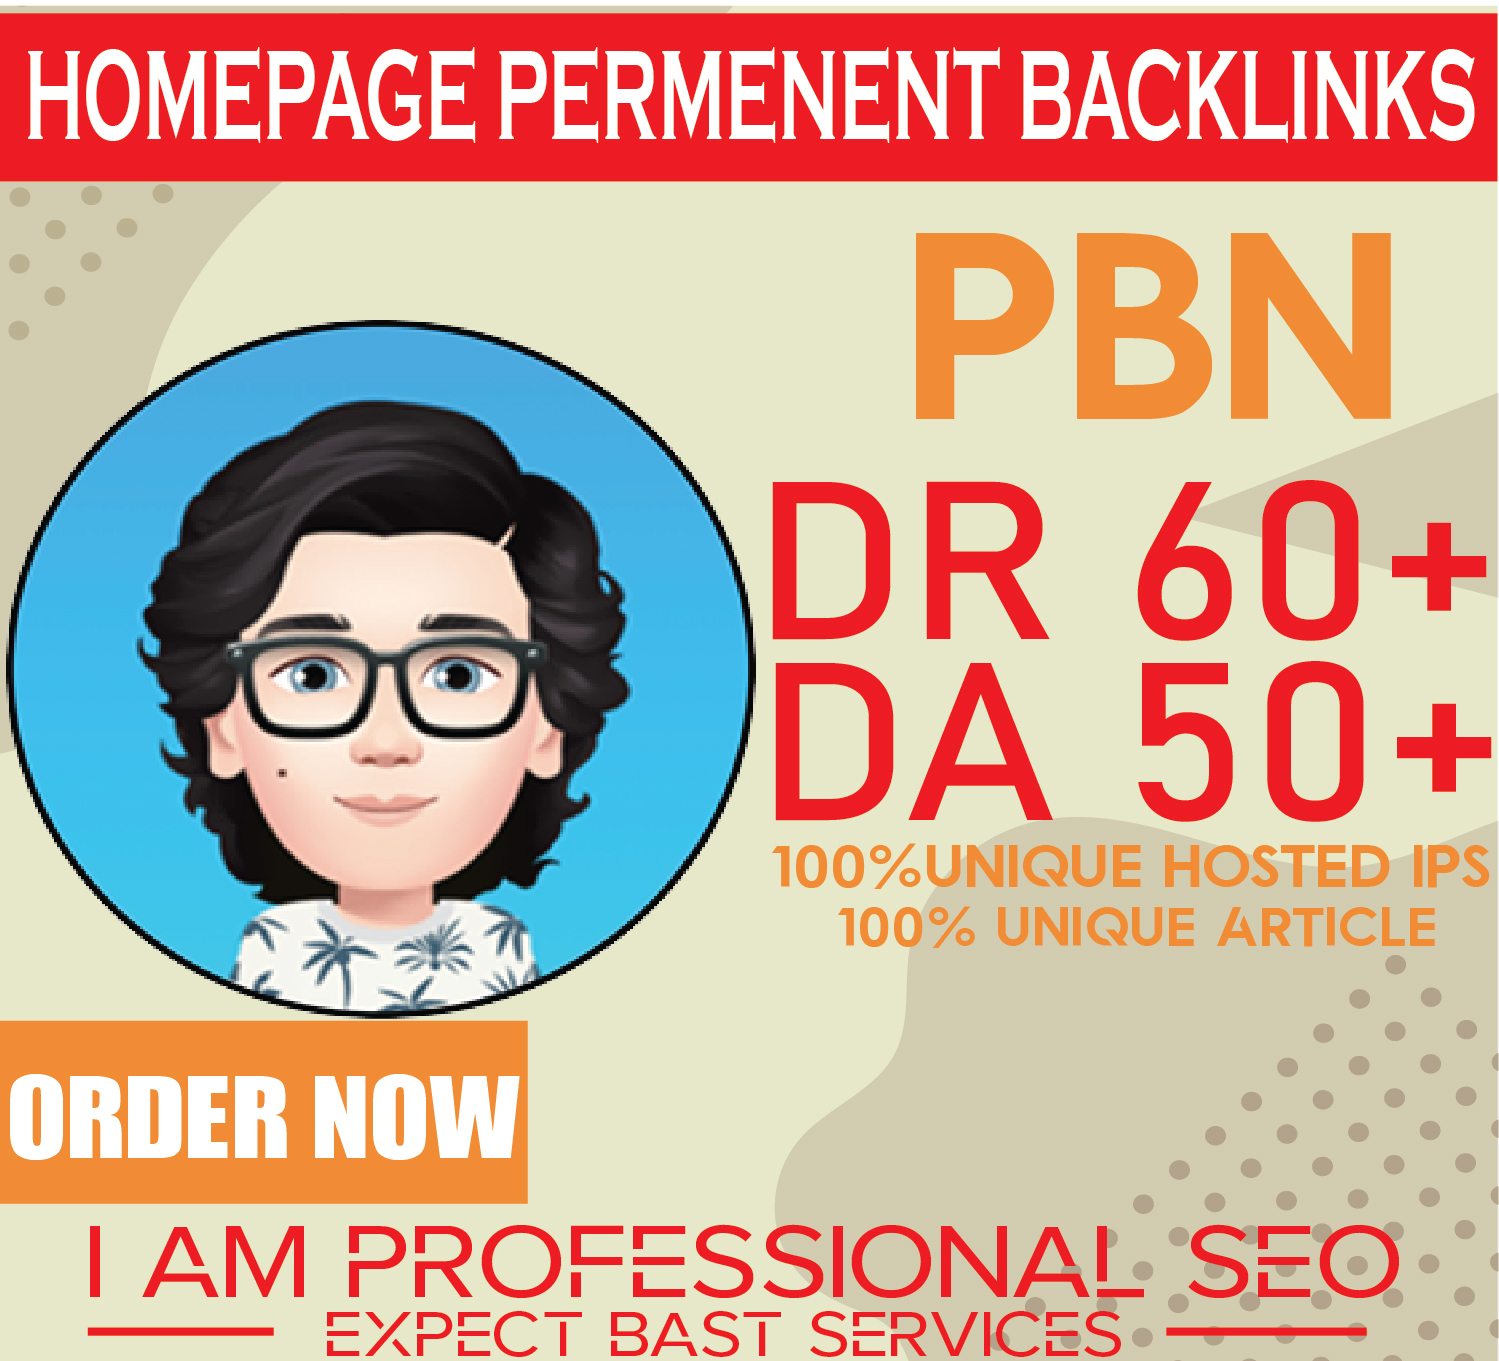 I will build 10 PBN permanent DR 60+ DA 50+ homepage super powerful High quality dofollow backlinks